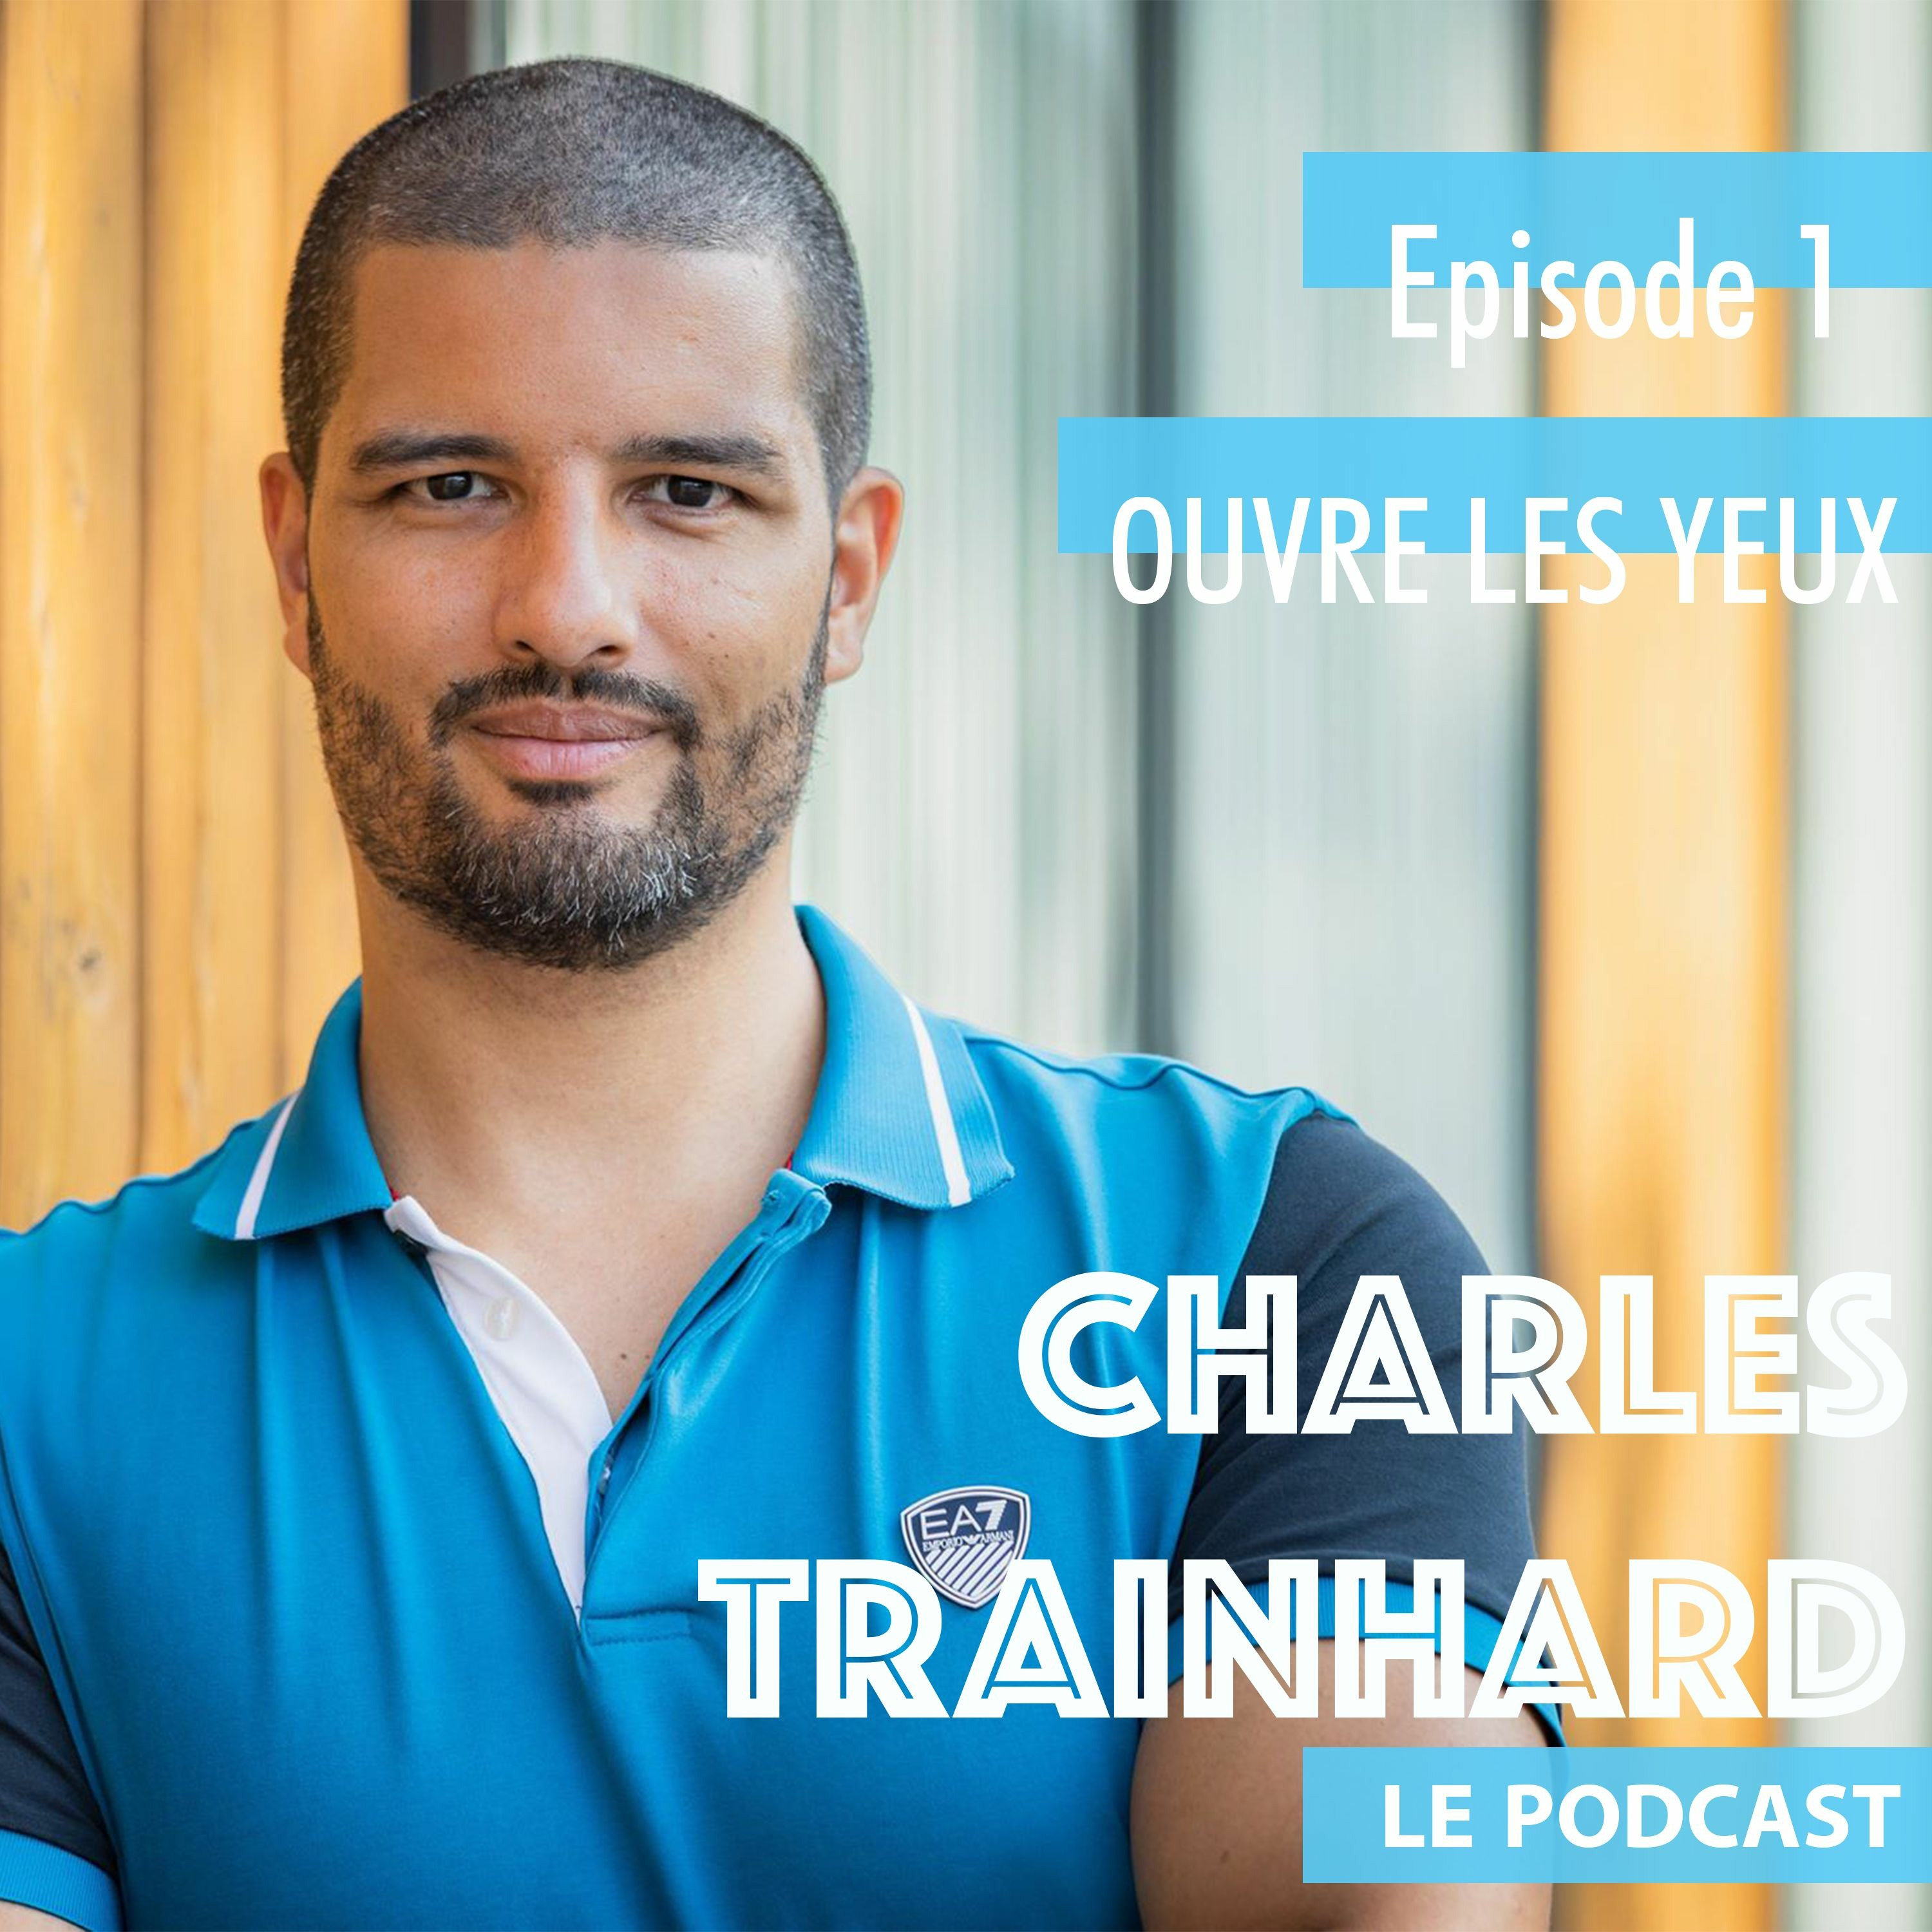 OUVRE LES YEUX - Live For Change - Ep 1 - Musculation